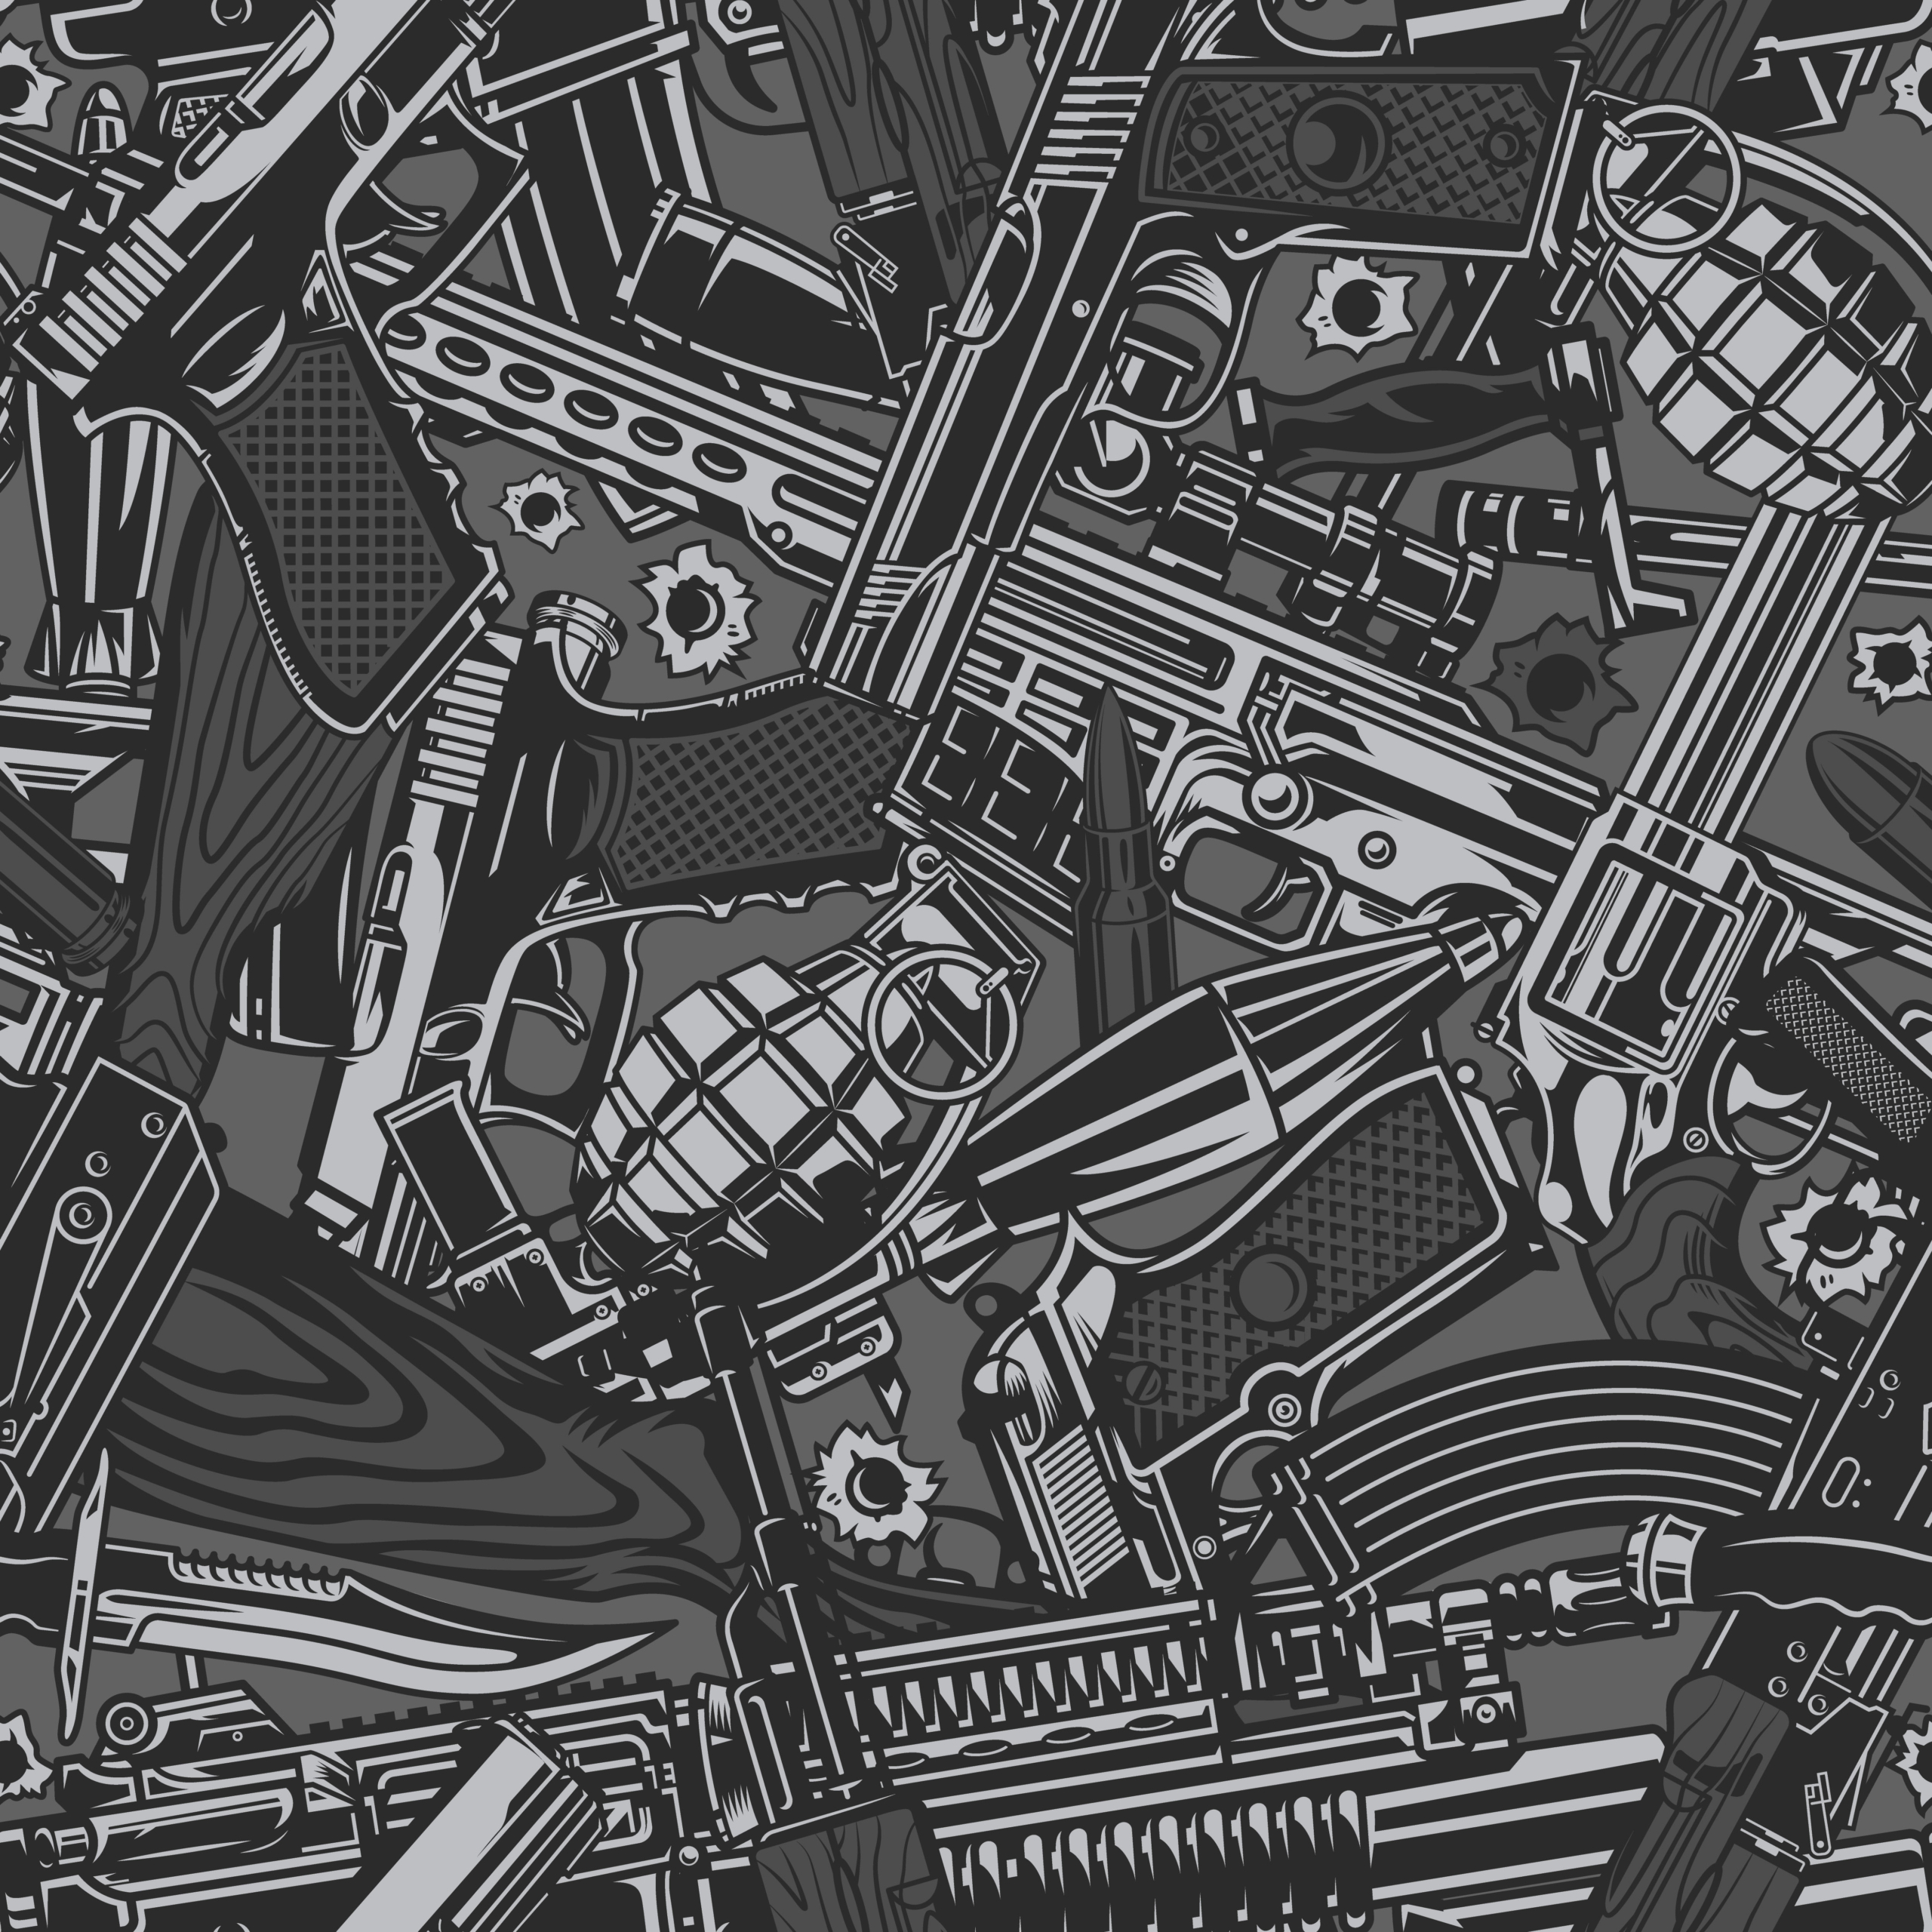 Vintage military weapons seamless pattern with guns pistols grenades automatic and sniper rifles knives in gray colors vector illustration